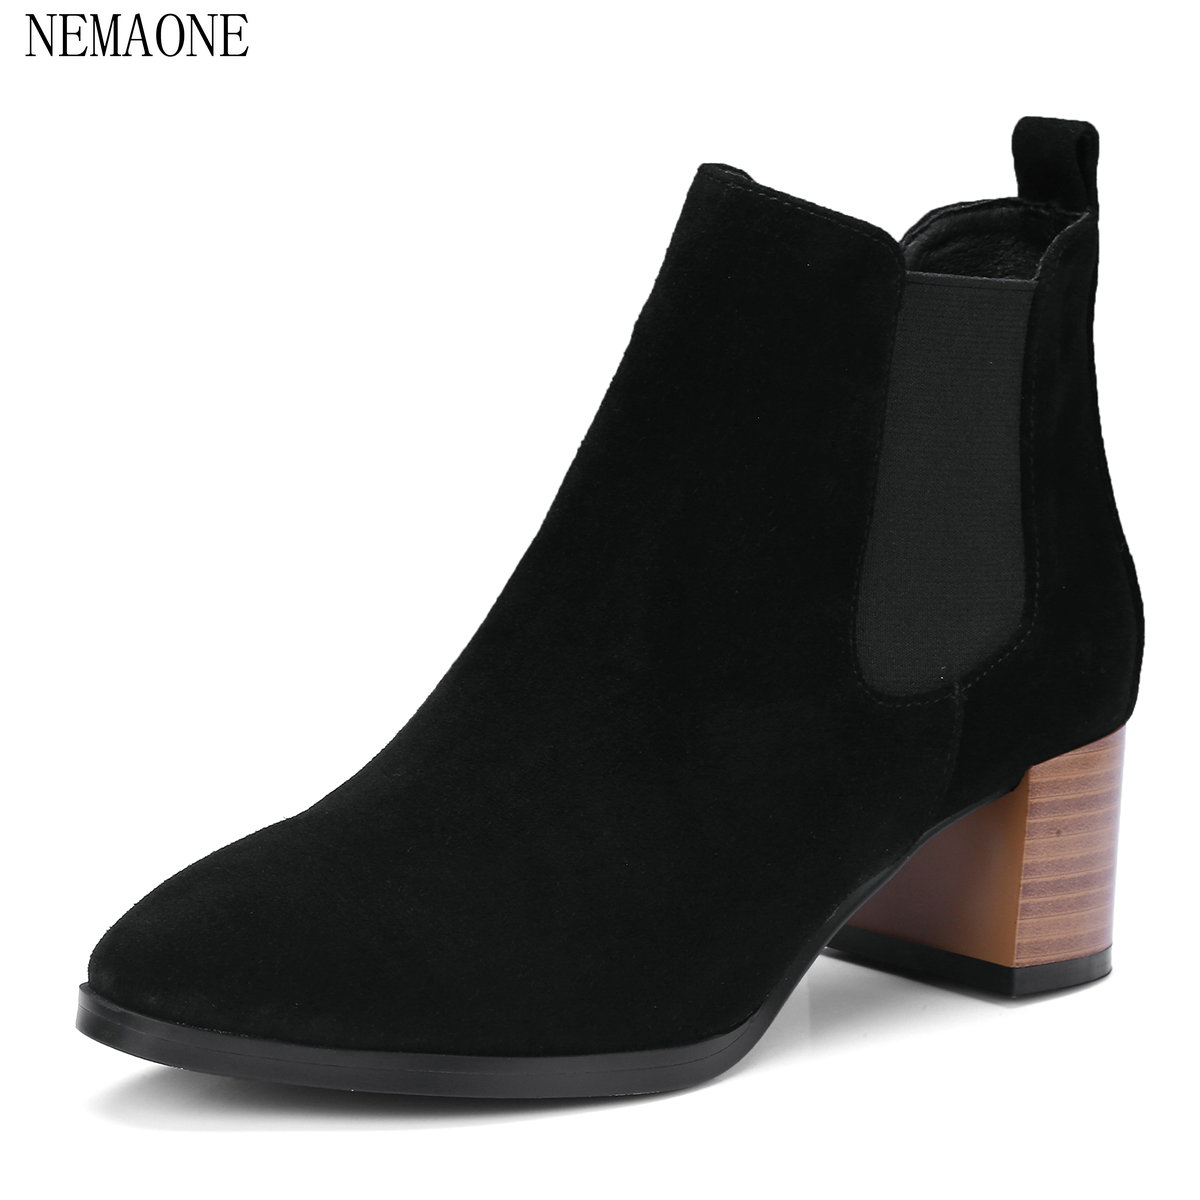 NEMAONE Genuine Leather Boots Square Heels Autumn Winter Ankle Boots Sexy Martin Fur Snow Boots Shoes Woman Size 34-40 new high quality genuine leather boots rivets square heels autumn winter ankle boots sexy fur snow boots shoes woman size